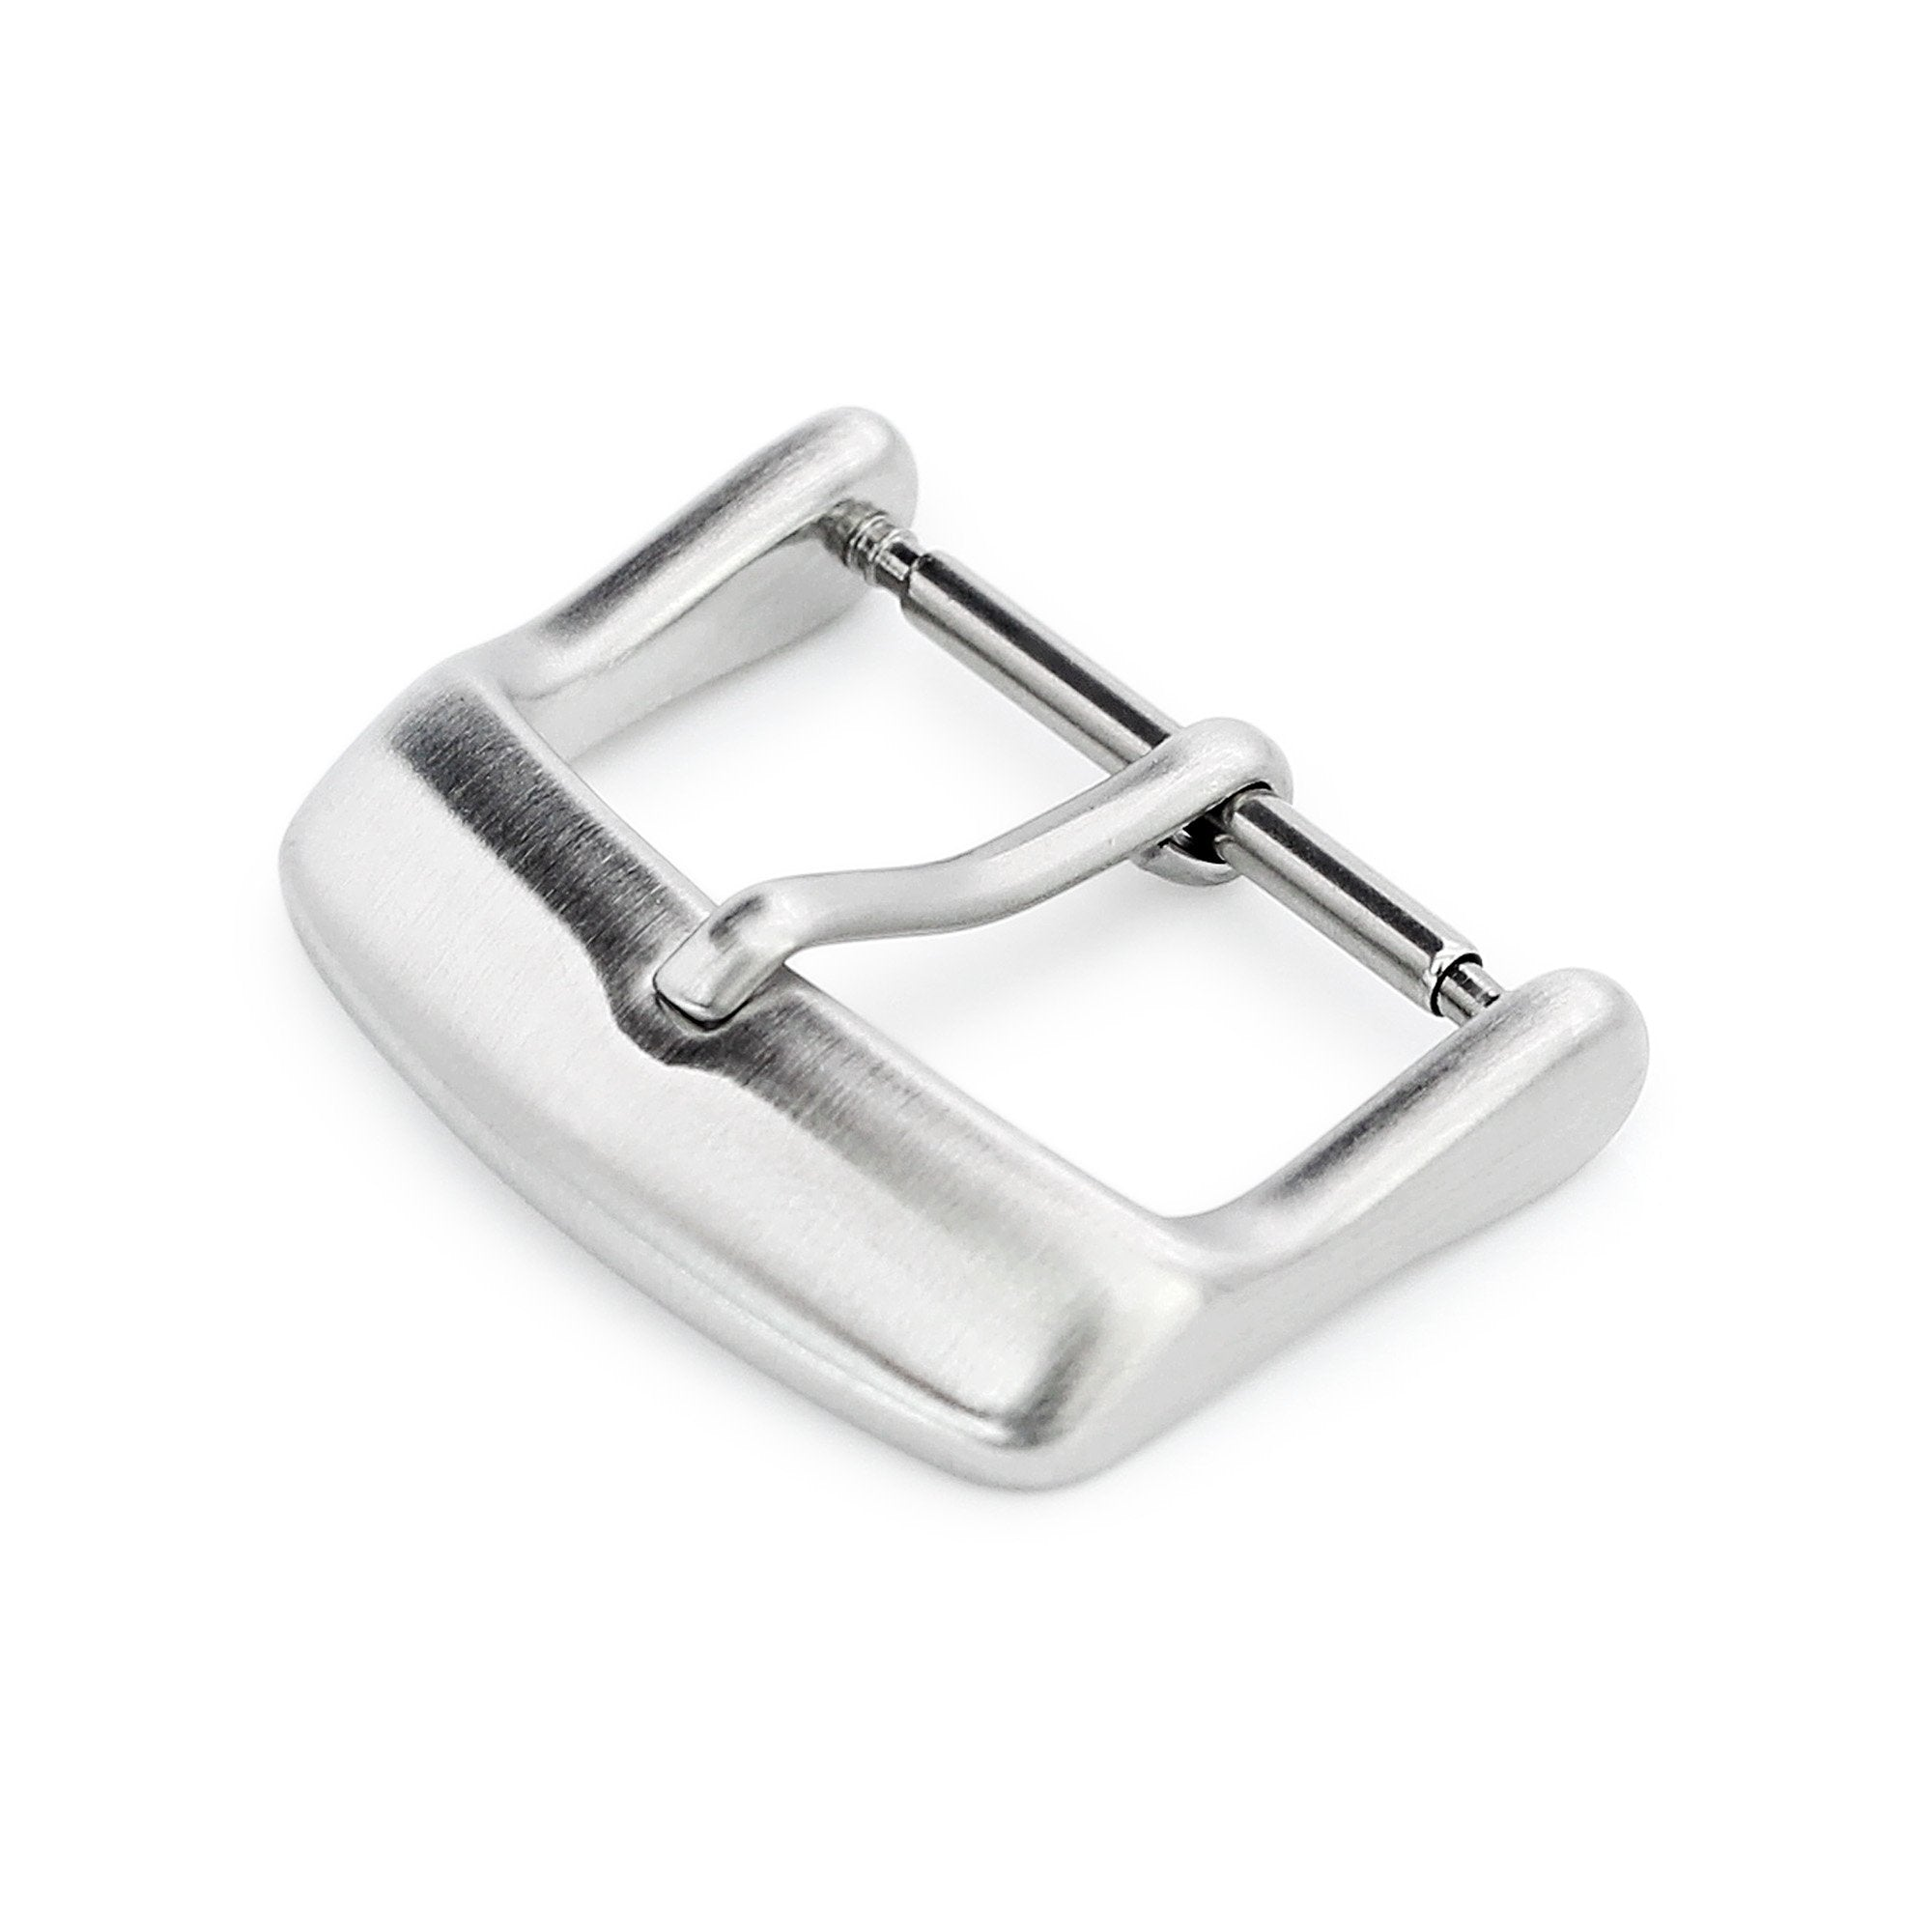 18mm 20mm #64 Sporty Tang Buckle for Leather Watch Strap Brushed Strapcode Buckles